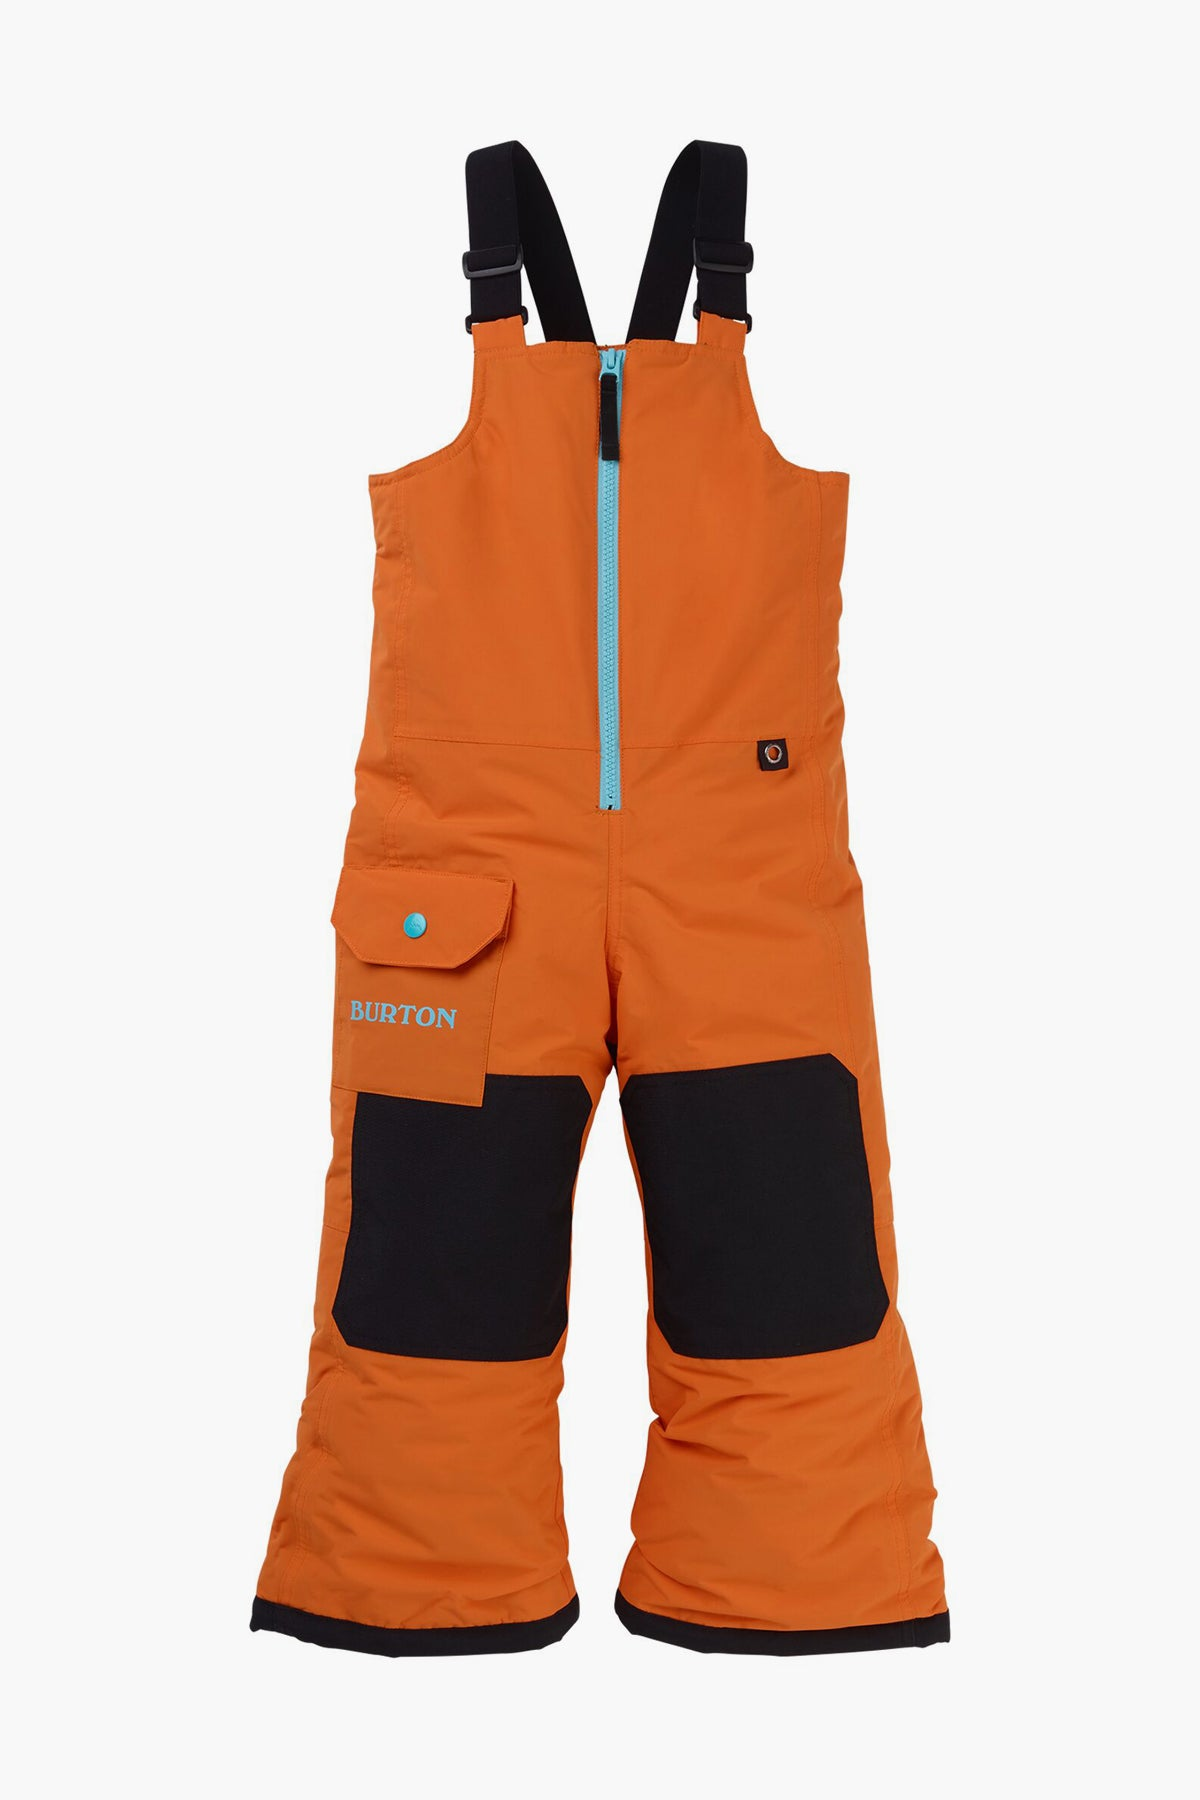 Burton Minishred Maven Bib Kids Snowpant - Russet Orange